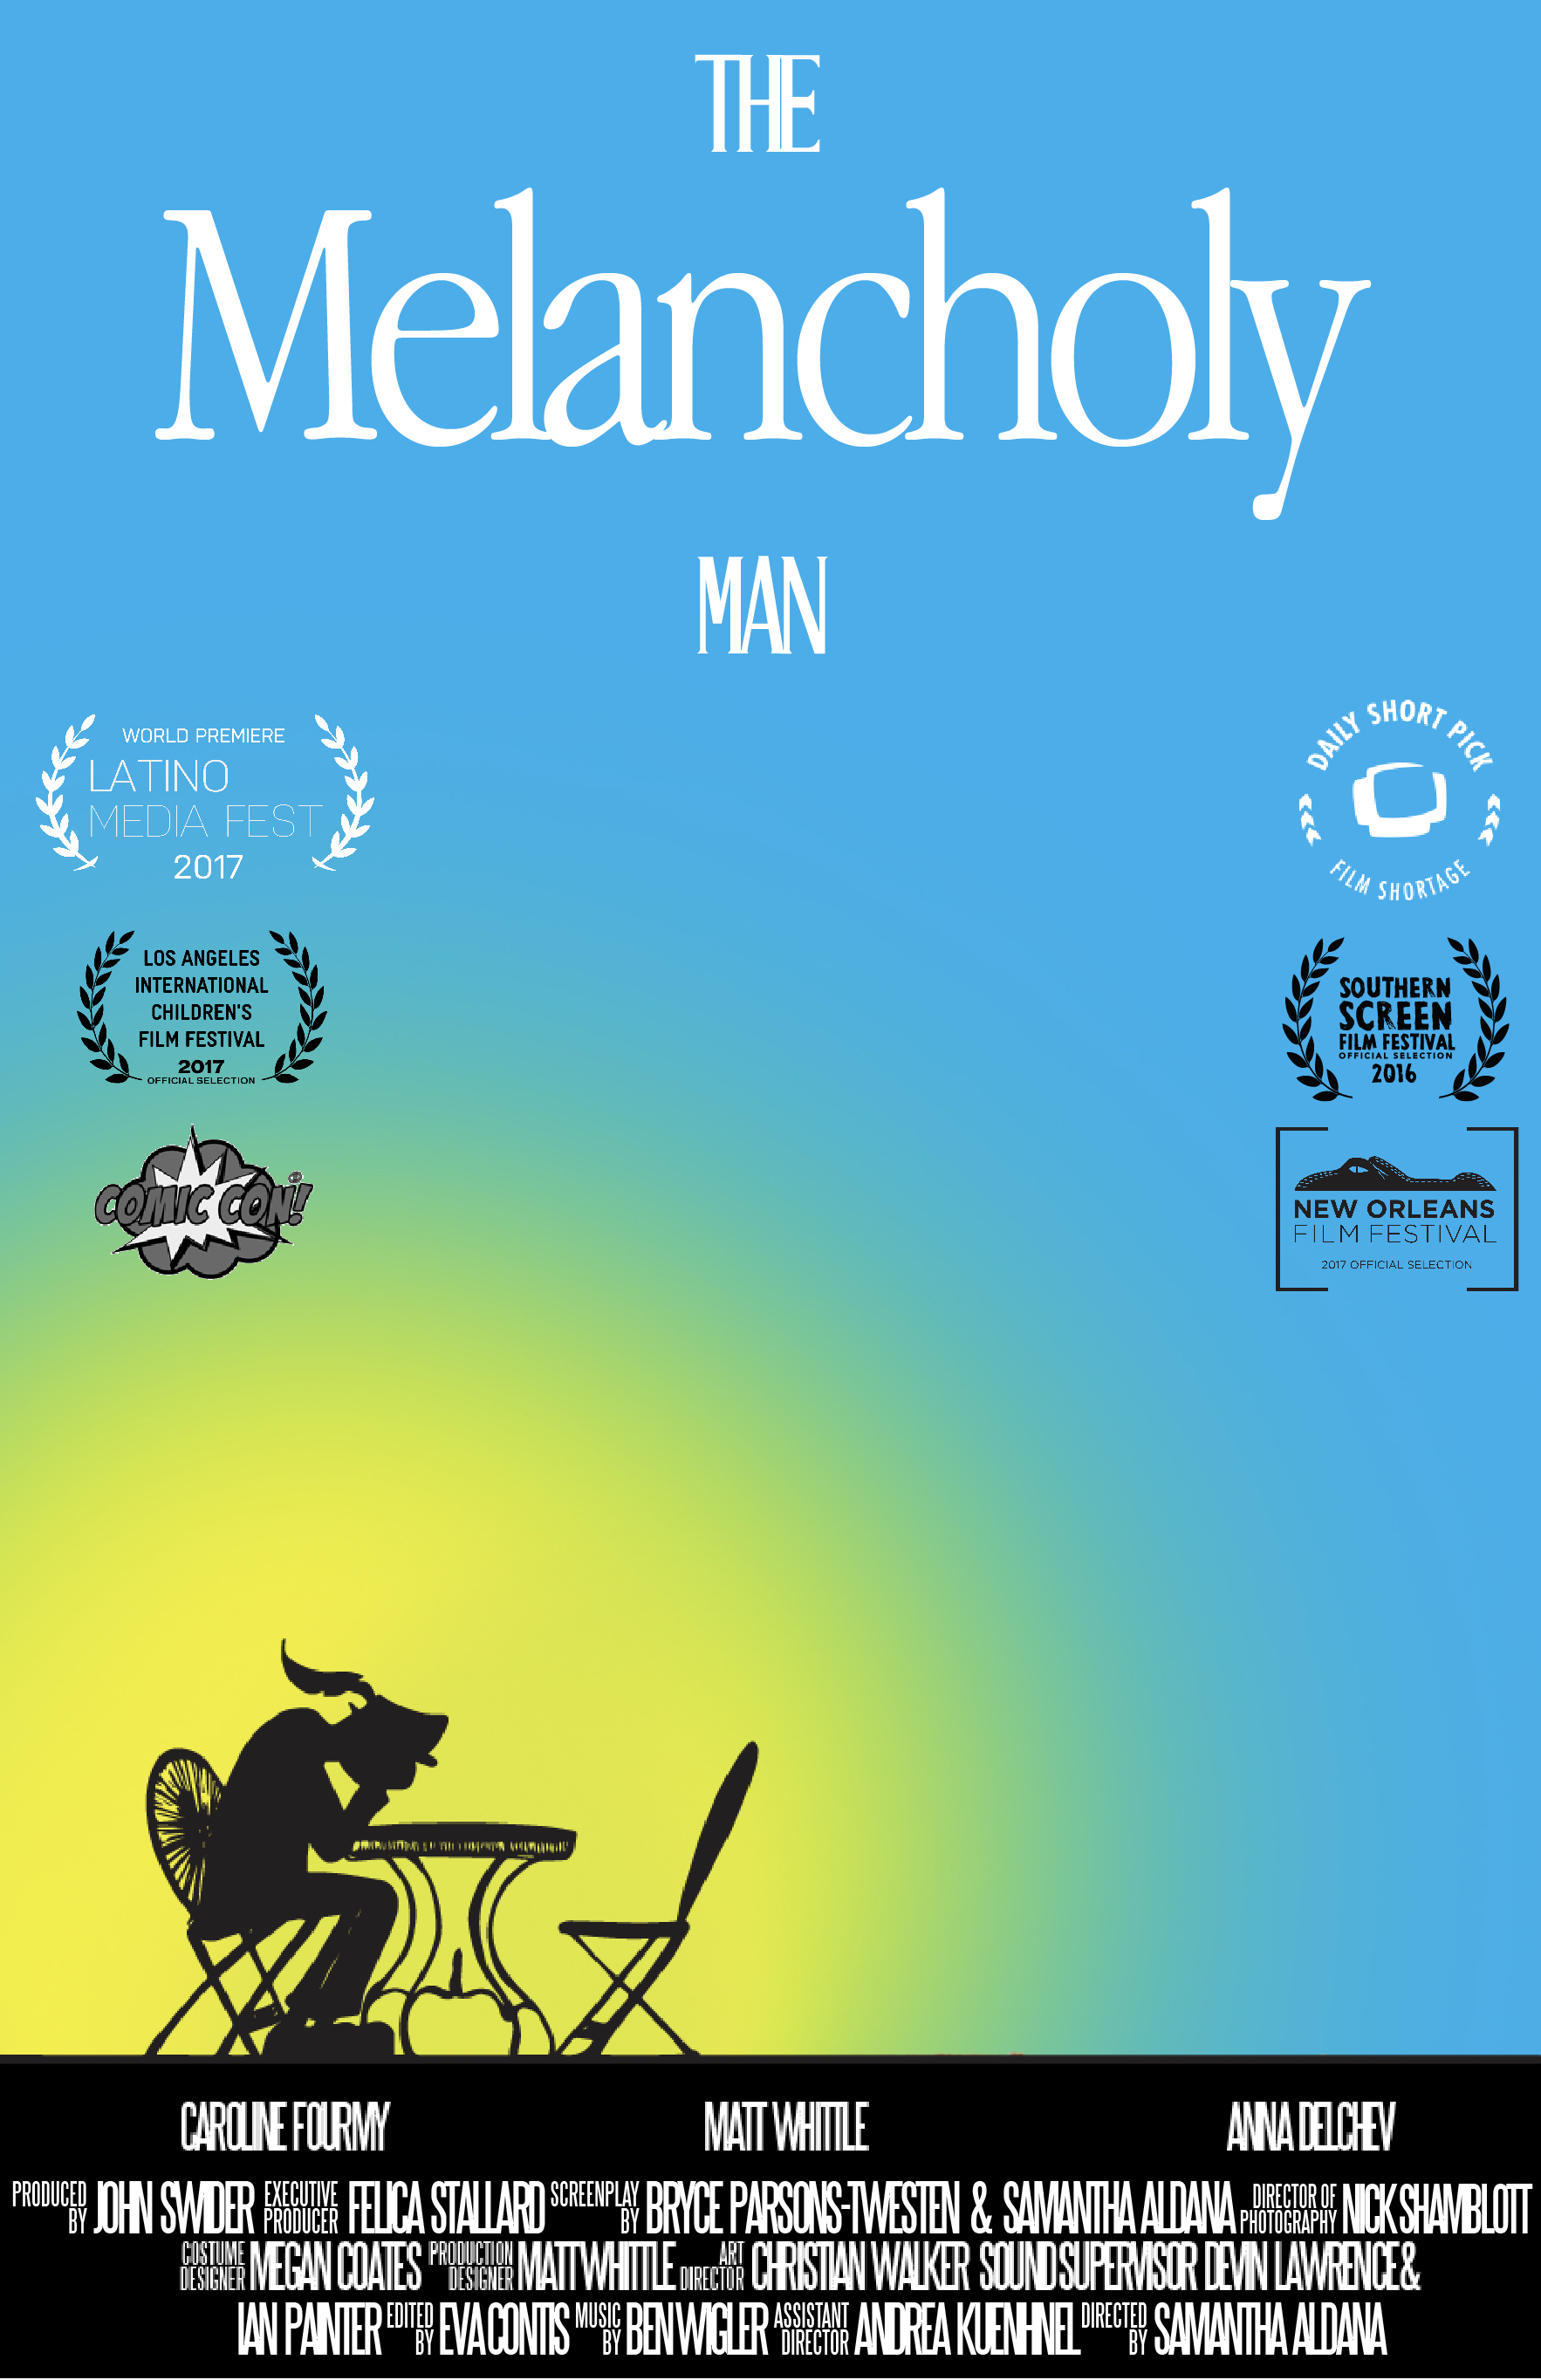 The Melancholy Man Poster